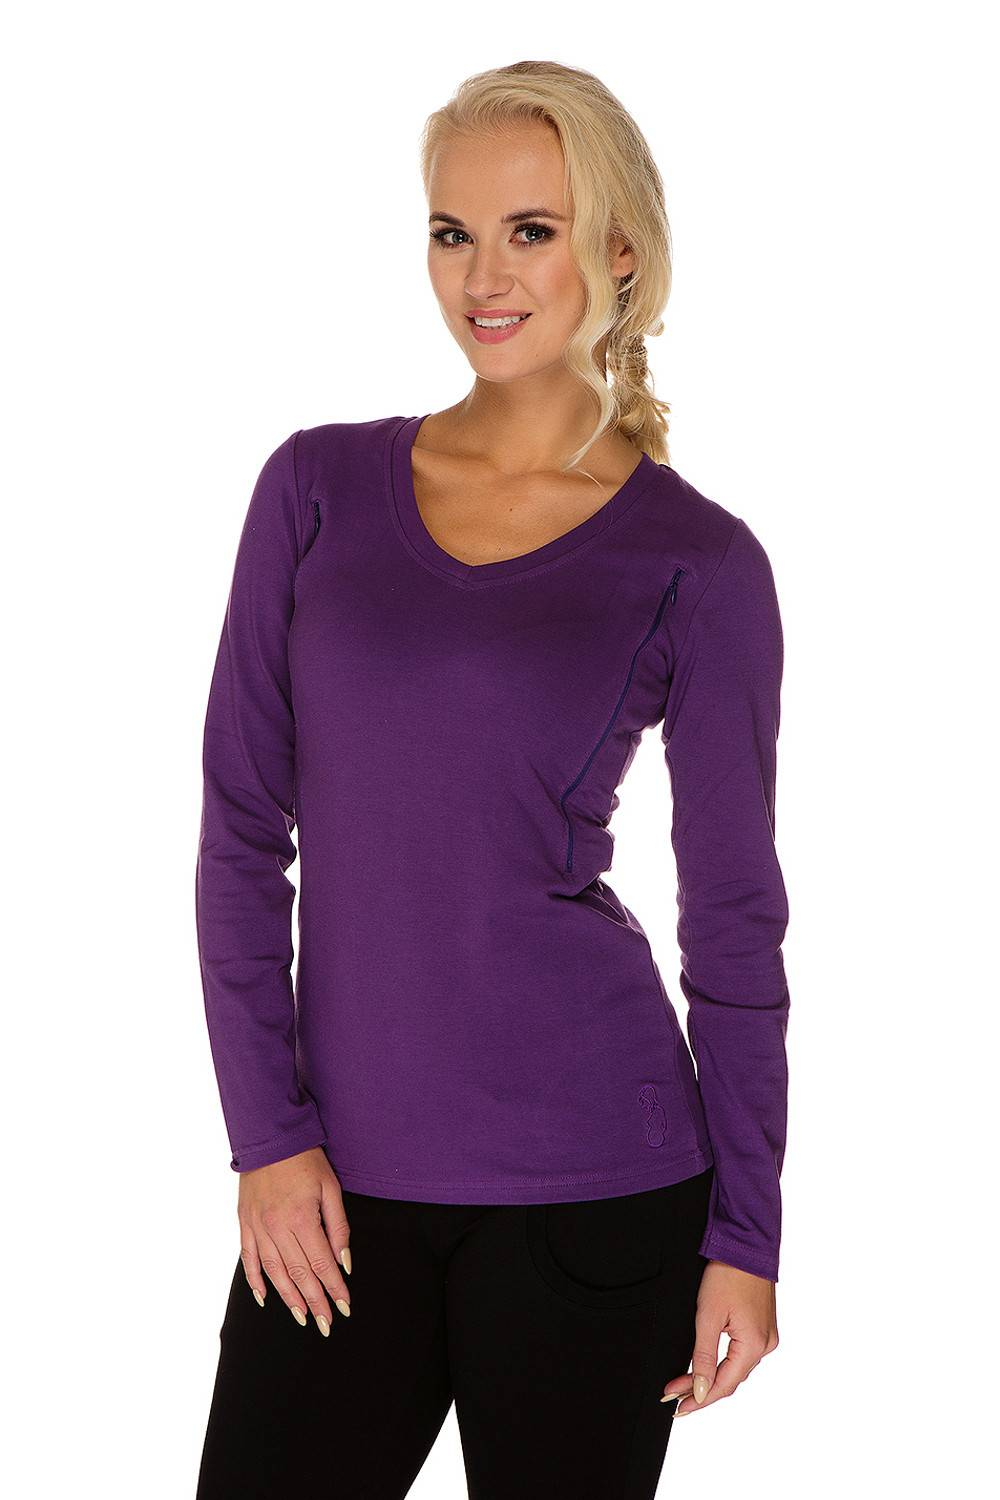 Maternity nursing long sleeve top purple